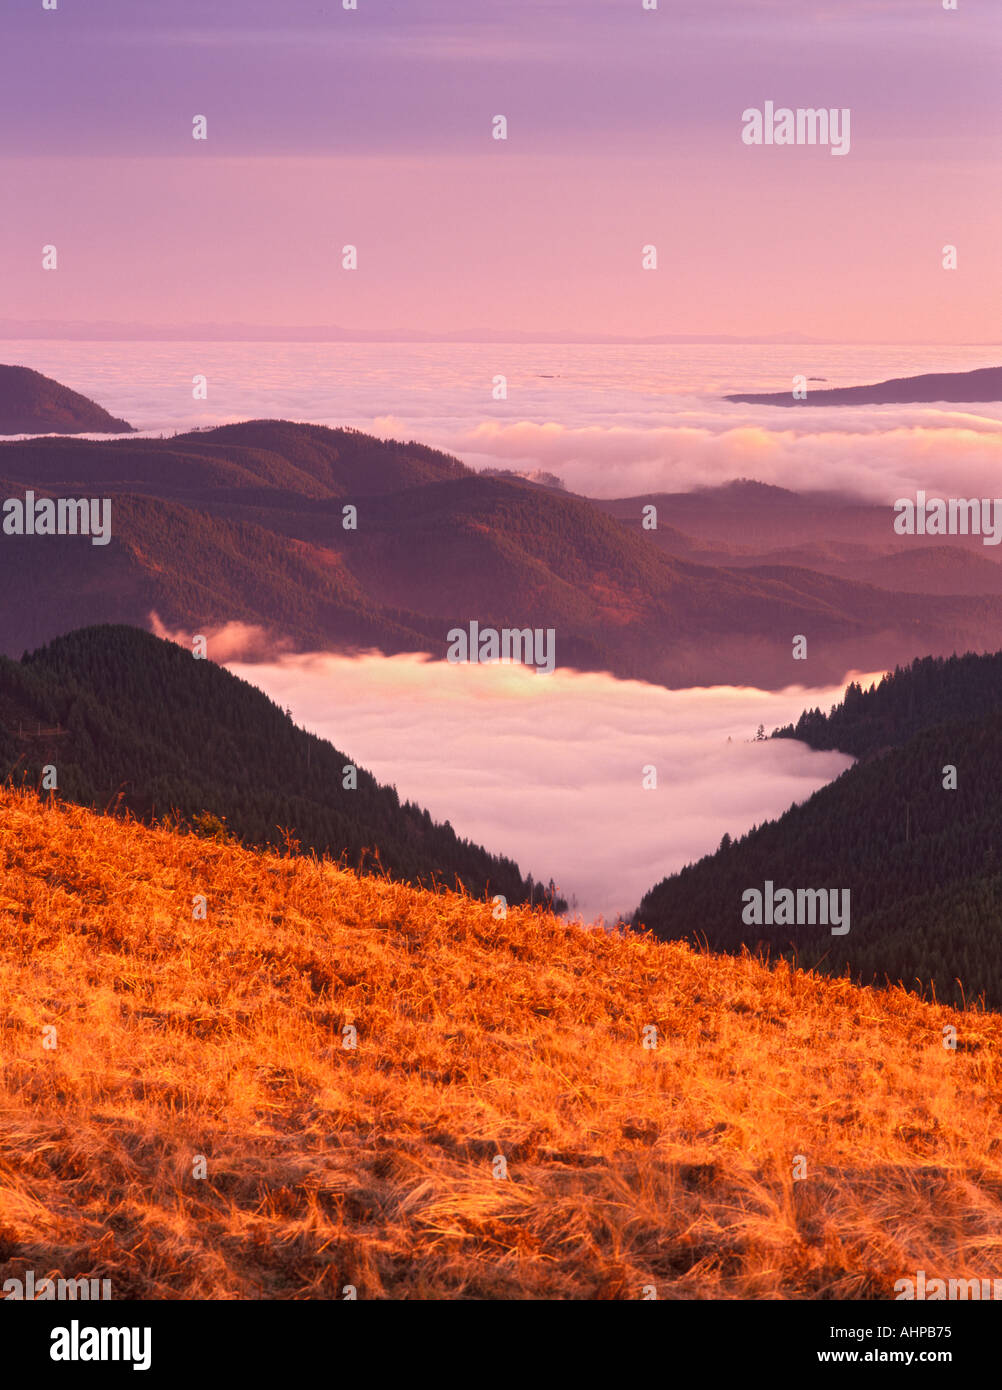 Sunset view with fog in valleys of Siuslaw National Forest As seen from Mary s Peak Oregon - Stock Image